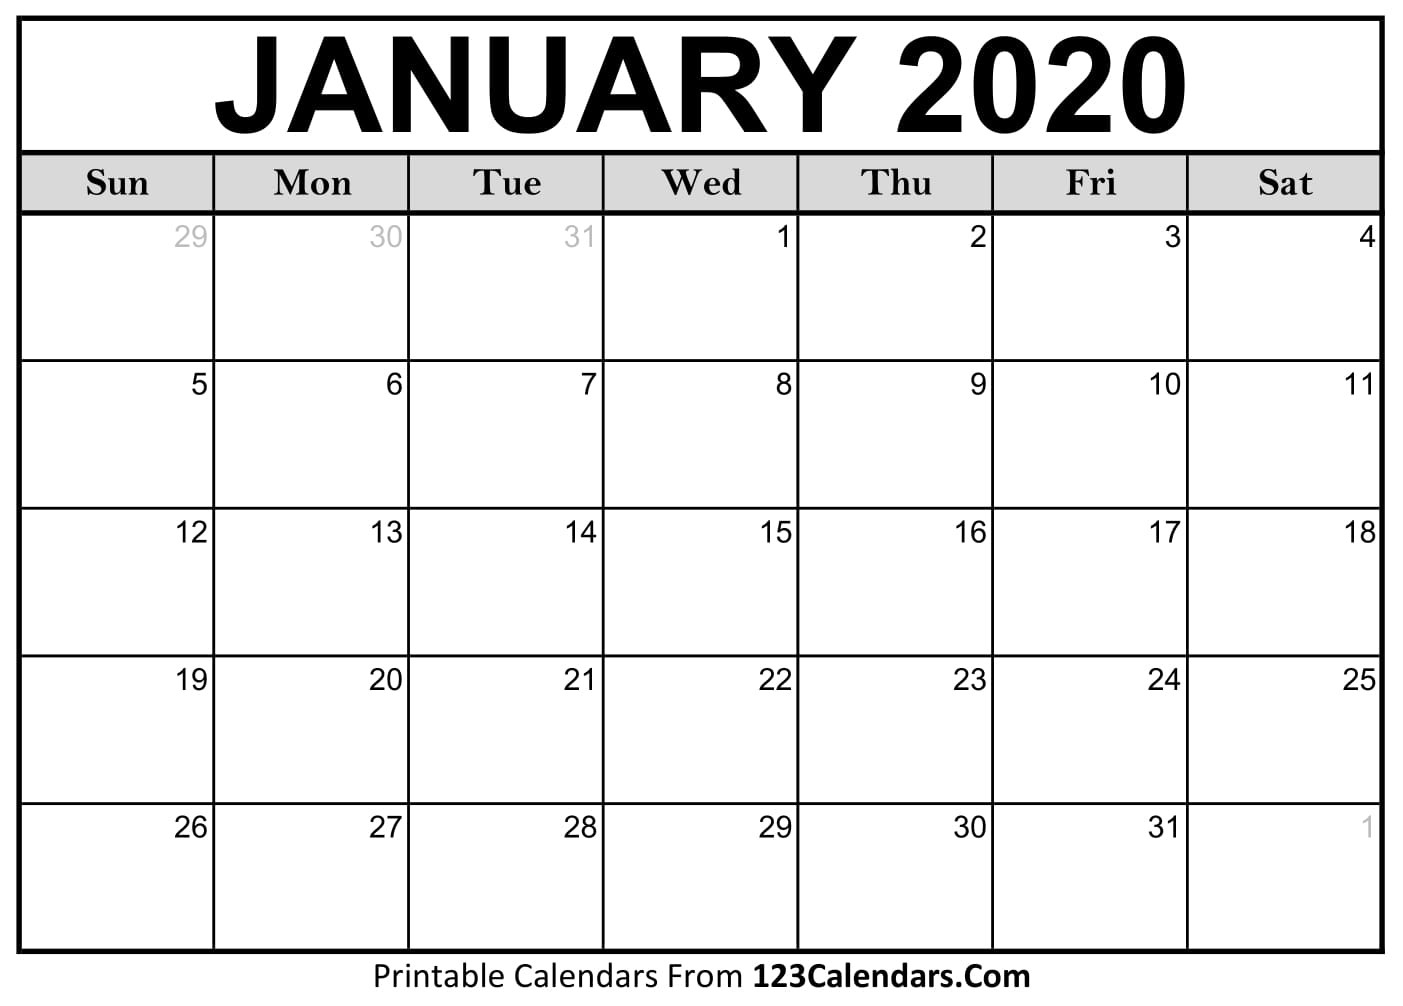 January 2020 Printable Calendar | 123Calendars  2020 Printable Calendar By Month